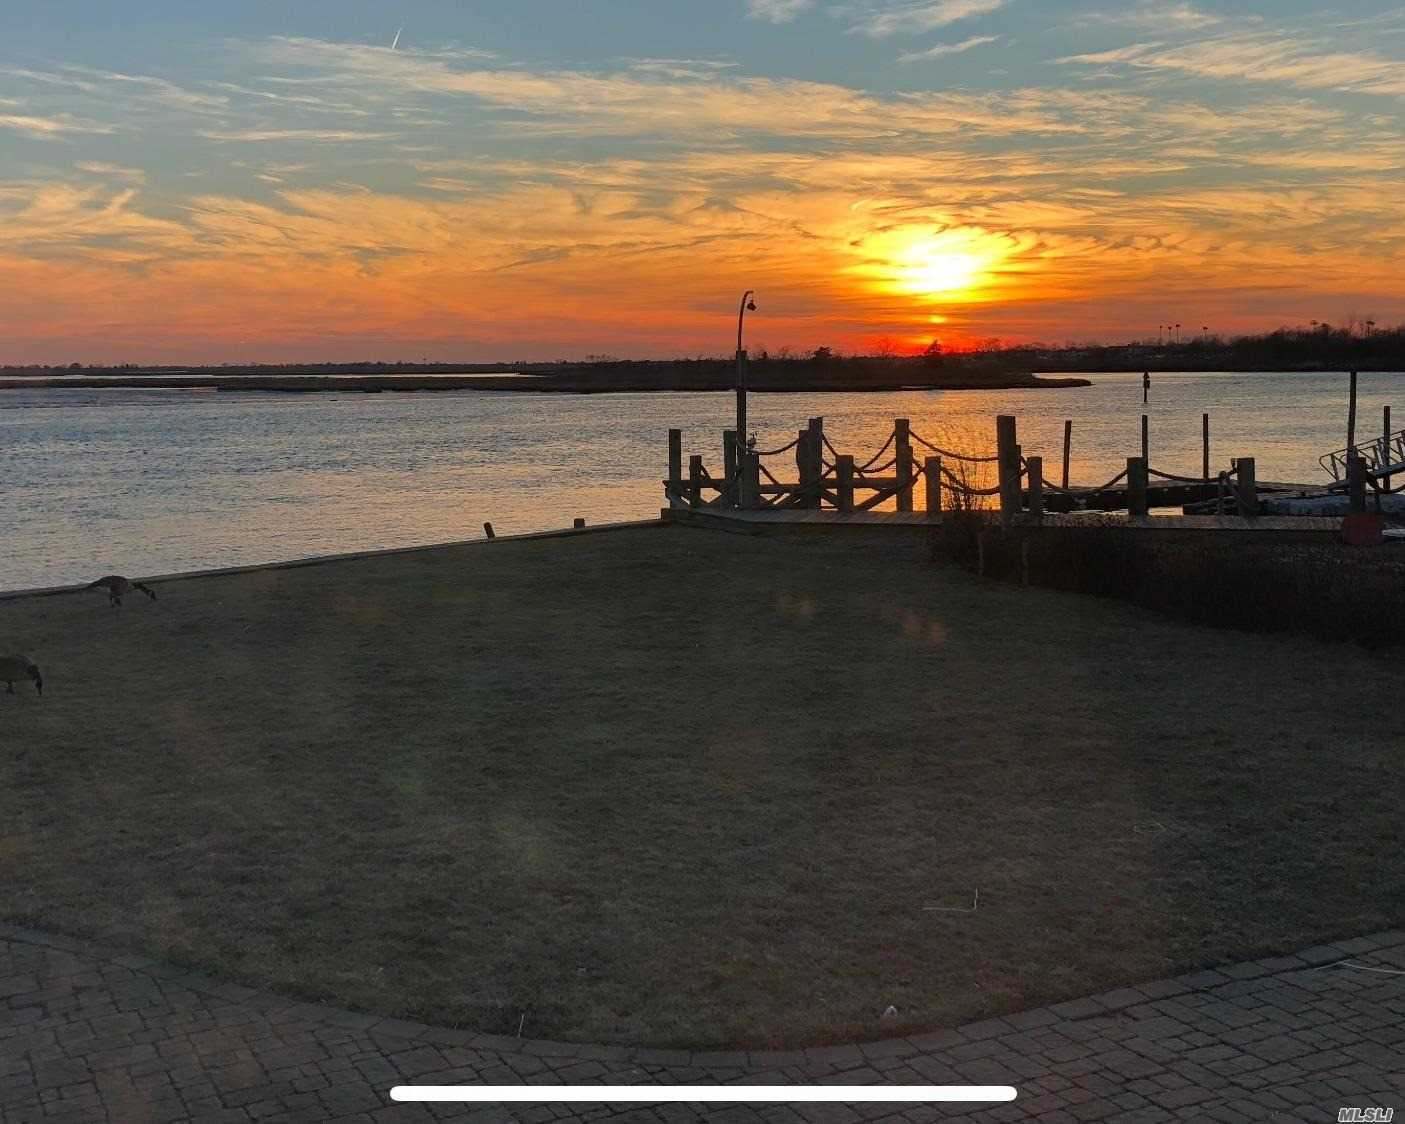 Gorgeous Bay Front Property W/Spectacular Views Set On Oversized Property Located In Massapequa Shores.This Home Features Open Floor Plan W/High End Finishes, Huge Eik W/SS Appls, Granite Counter Tops & Marble Floors, Huge Living Room W/Vaulted Ceilings, Recessed Lighting, Hardwood Floors & Sliders To Backyard, Fdr W/Fireplace, 4 Bedrooms, 2.5 Baths, Family Rm.Close To Schools, Shopping, Restaurants & Transportation.85 Ft Bulkhead, A Boat Lovers Delight !